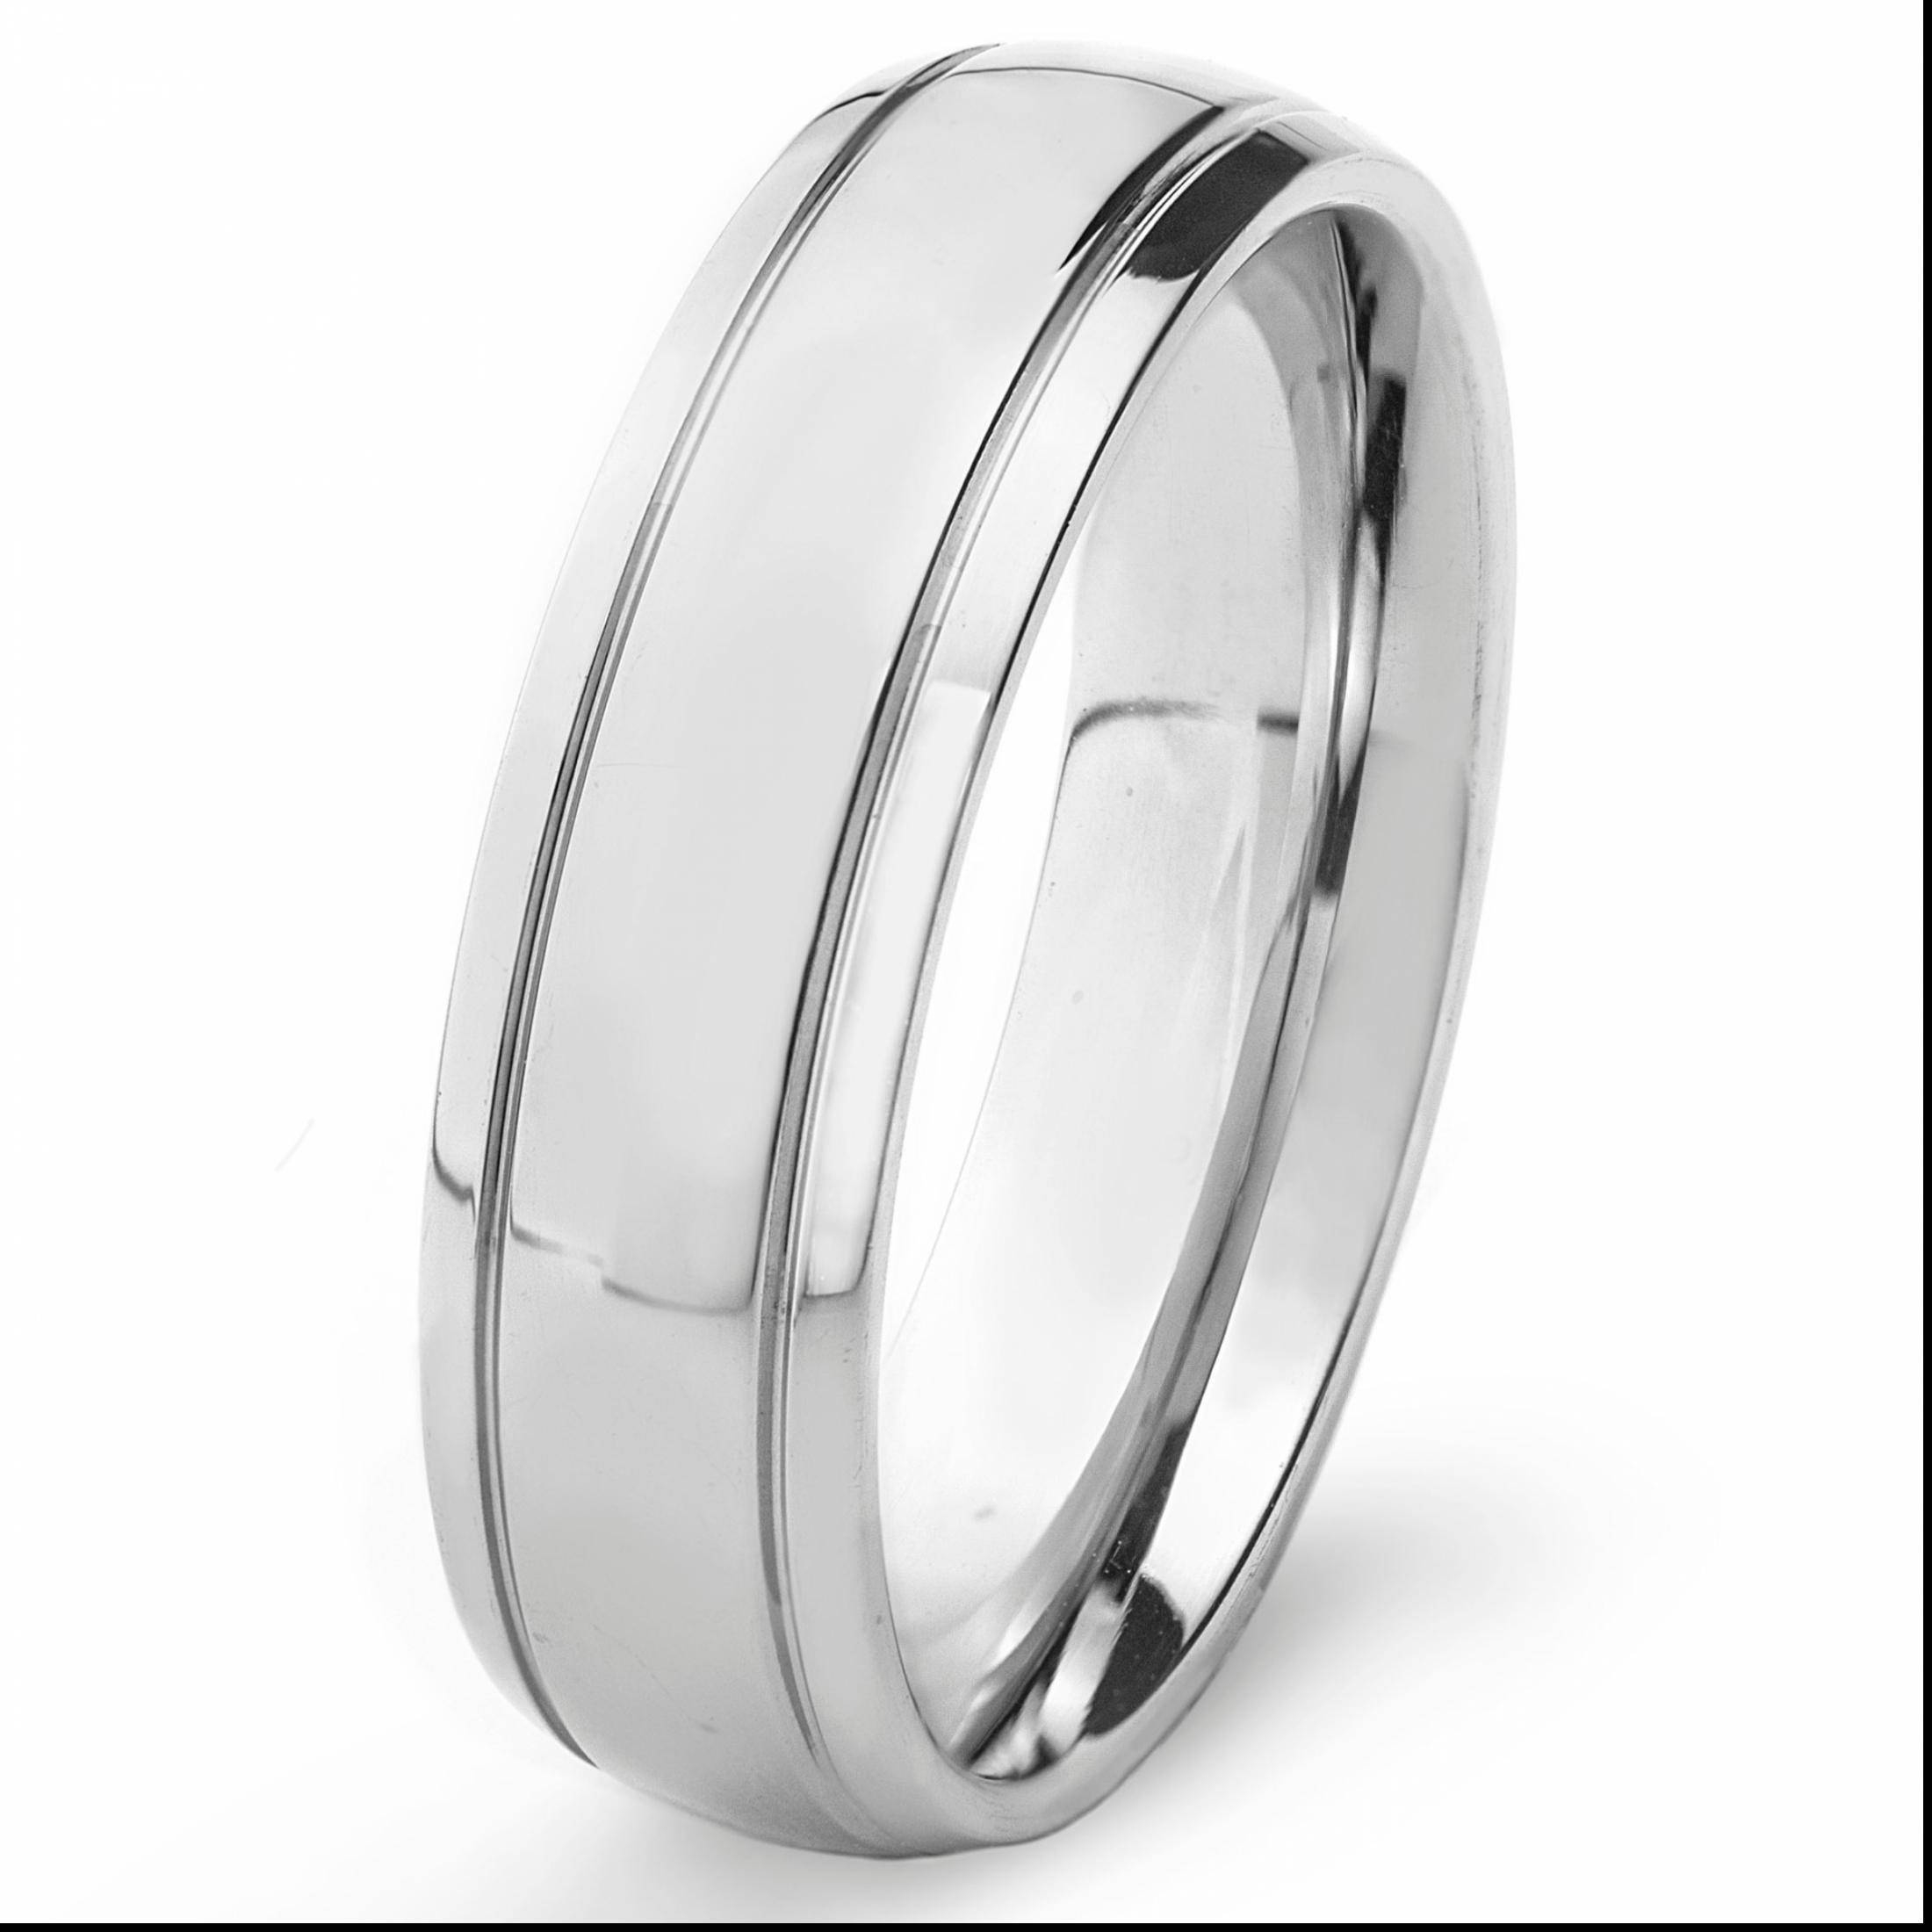 Overstock Mens Wedding Rings Lovely Mens Wedding Bands Tungsten Vs With Regard To Overstock Mens Wedding Bands (View 13 of 15)